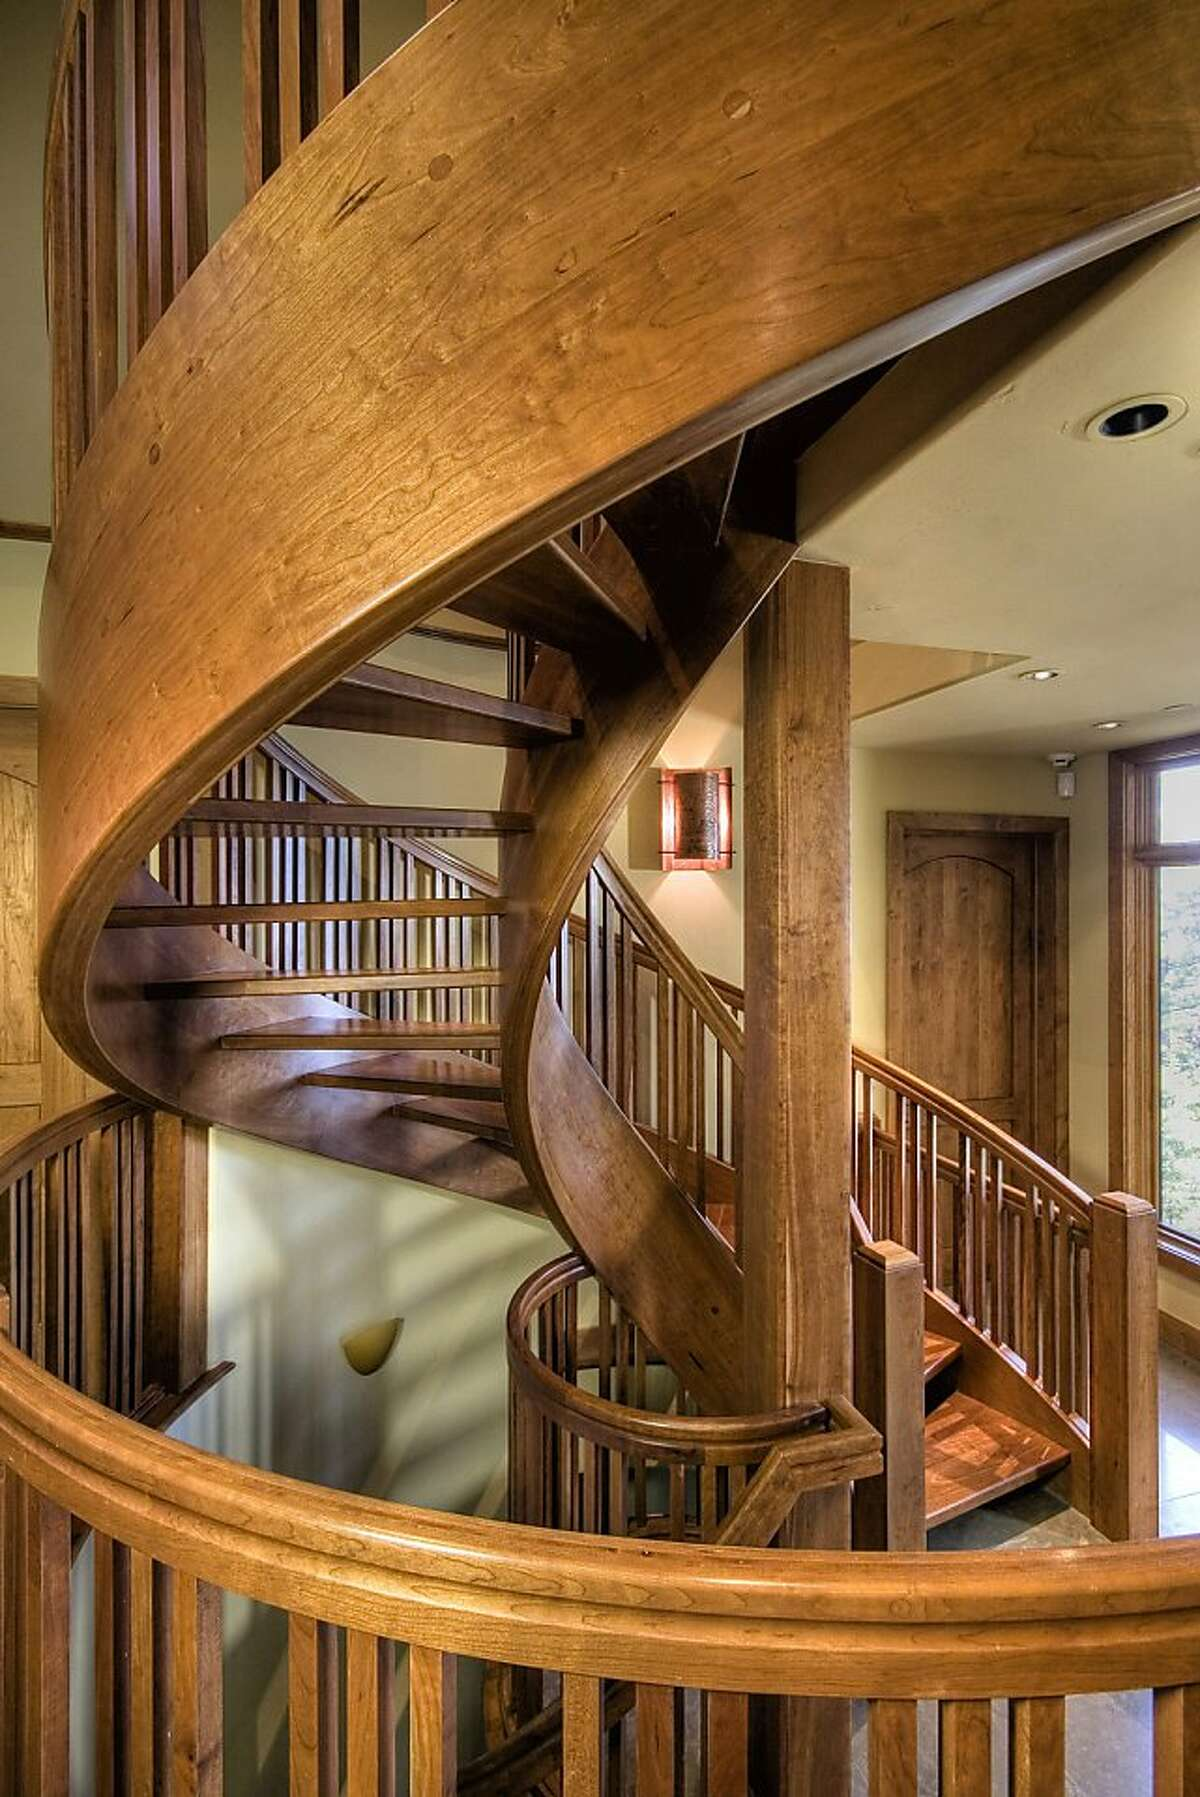 This is a detail shot of the stairs at the getaway home in Lake Tahoe.